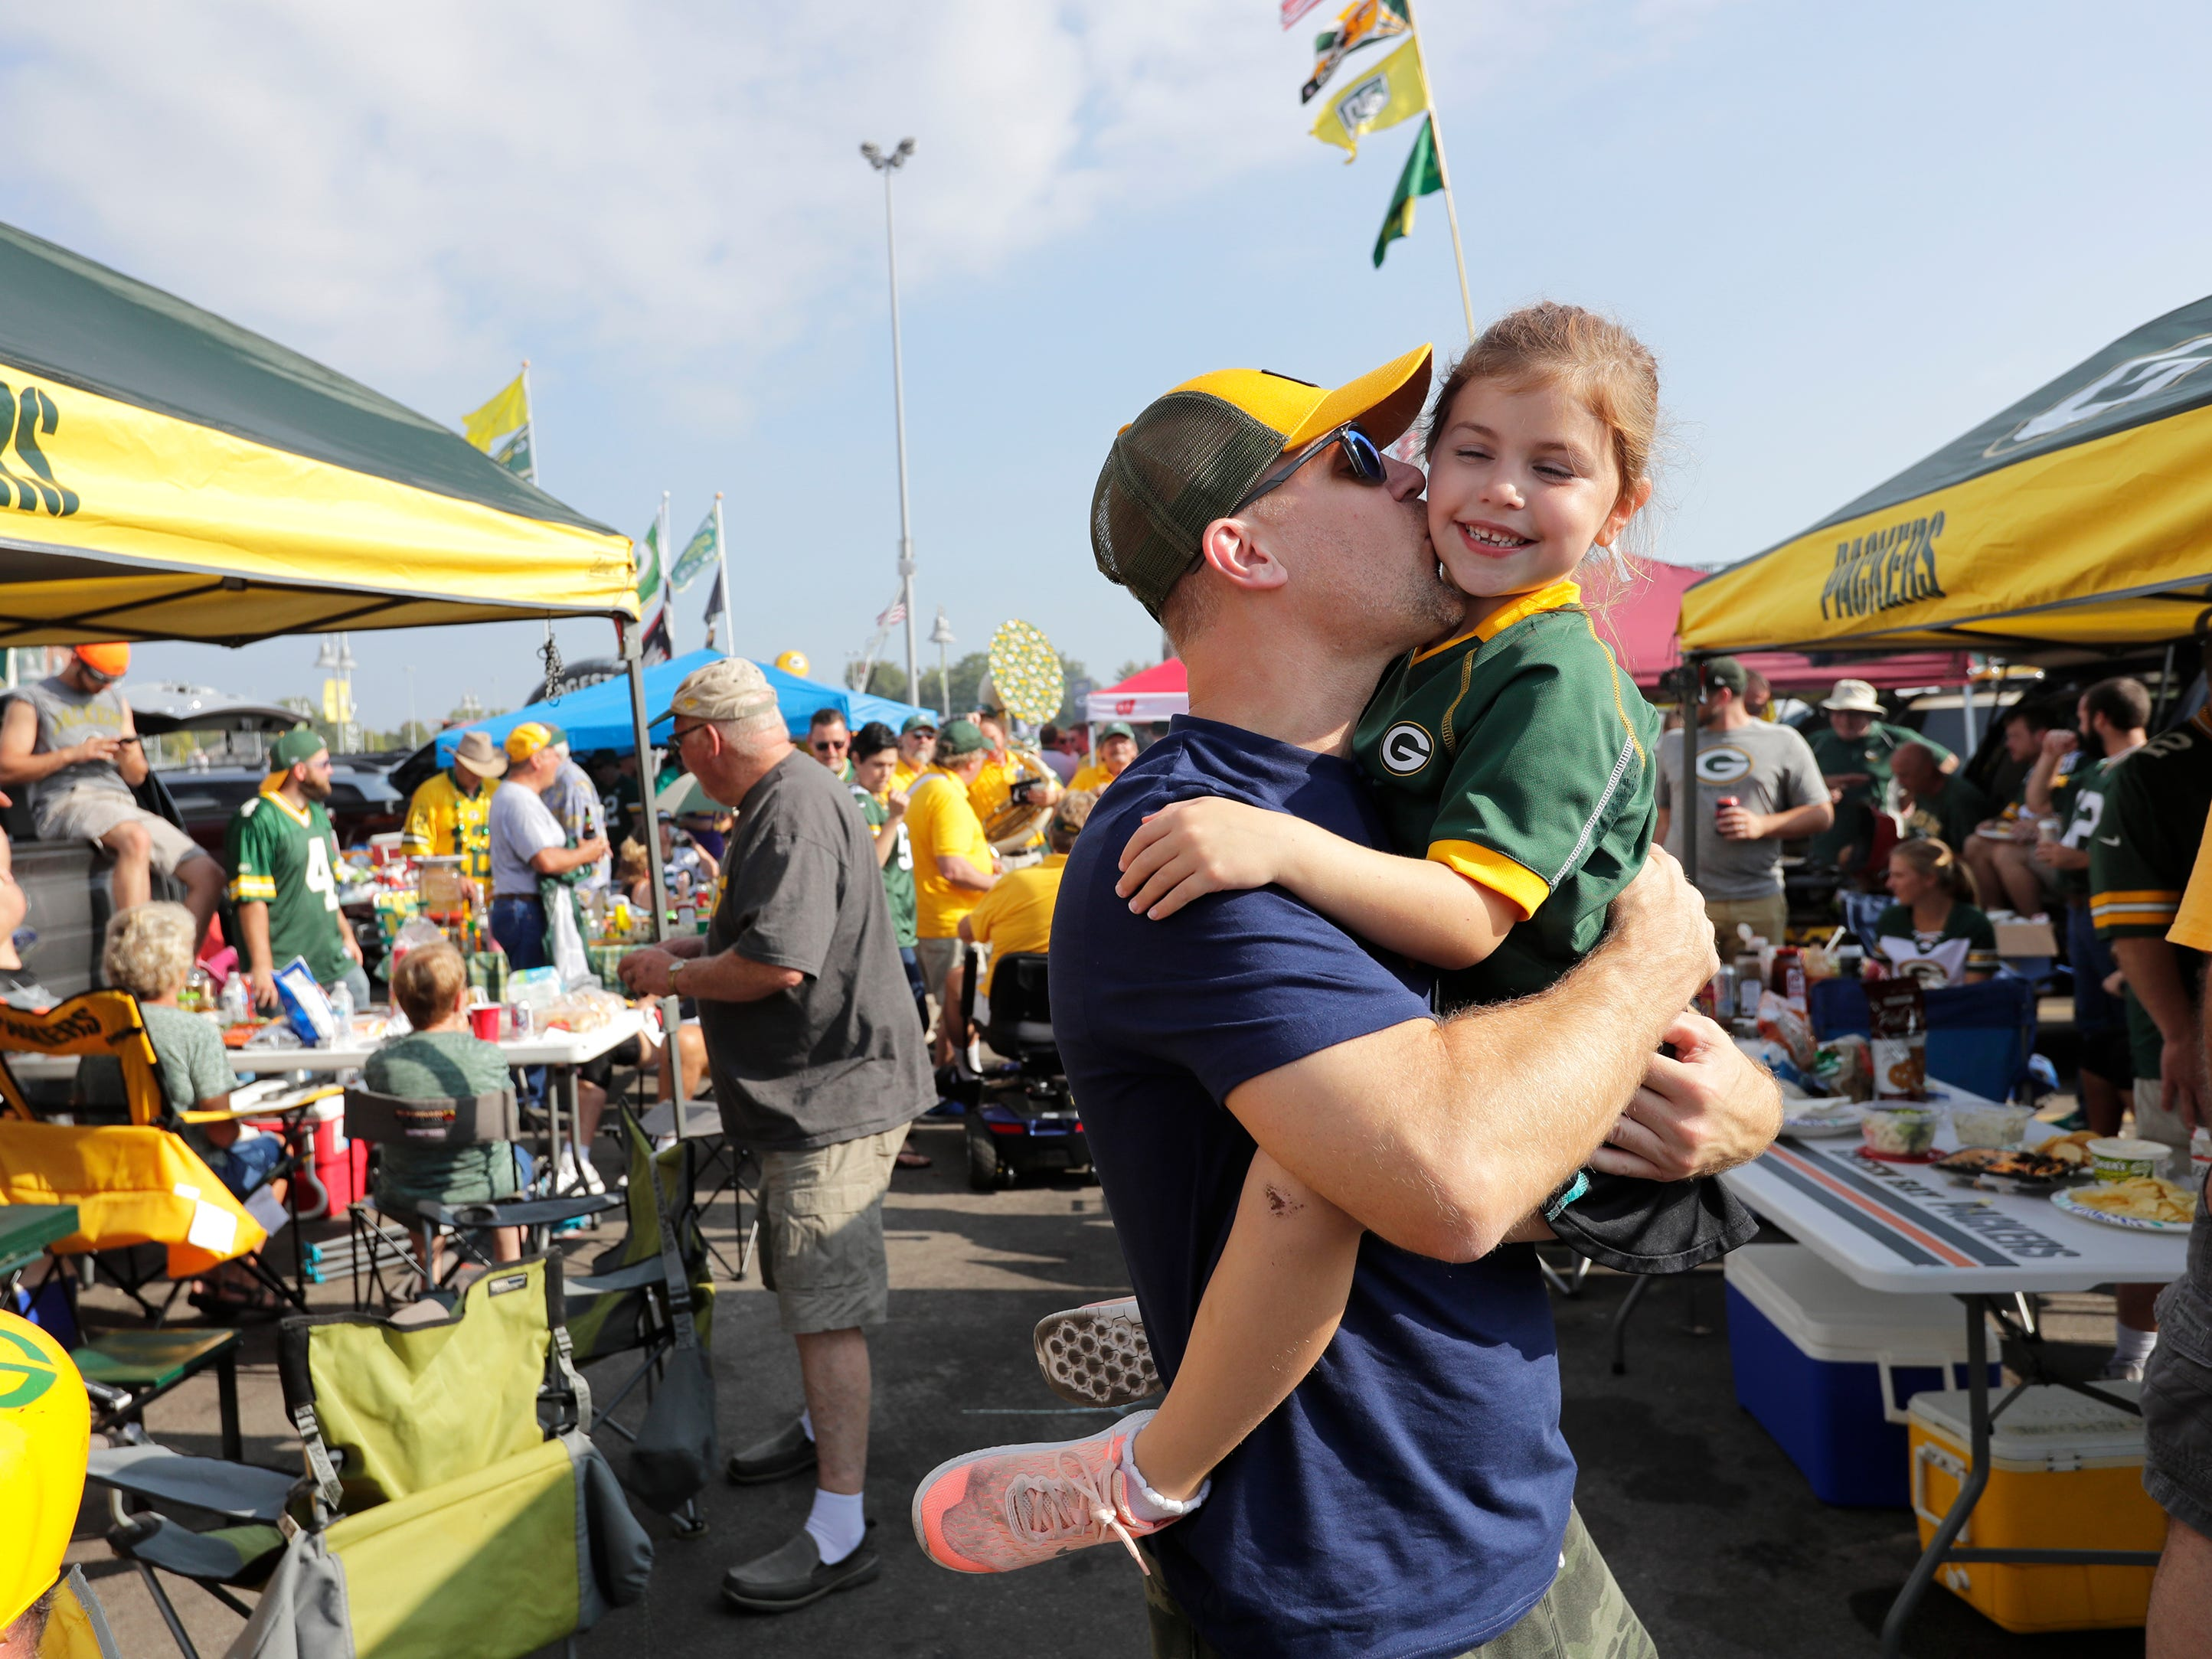 Craig Mickelson of Mahtomedi, MN, and his daughter Zoey, 6, have fun tailgating before the Green Bay Packers play against the Minnesota Vikings Sunday, Sept. 16, 2018, at Lambeau Field in Green Bay, Wis.